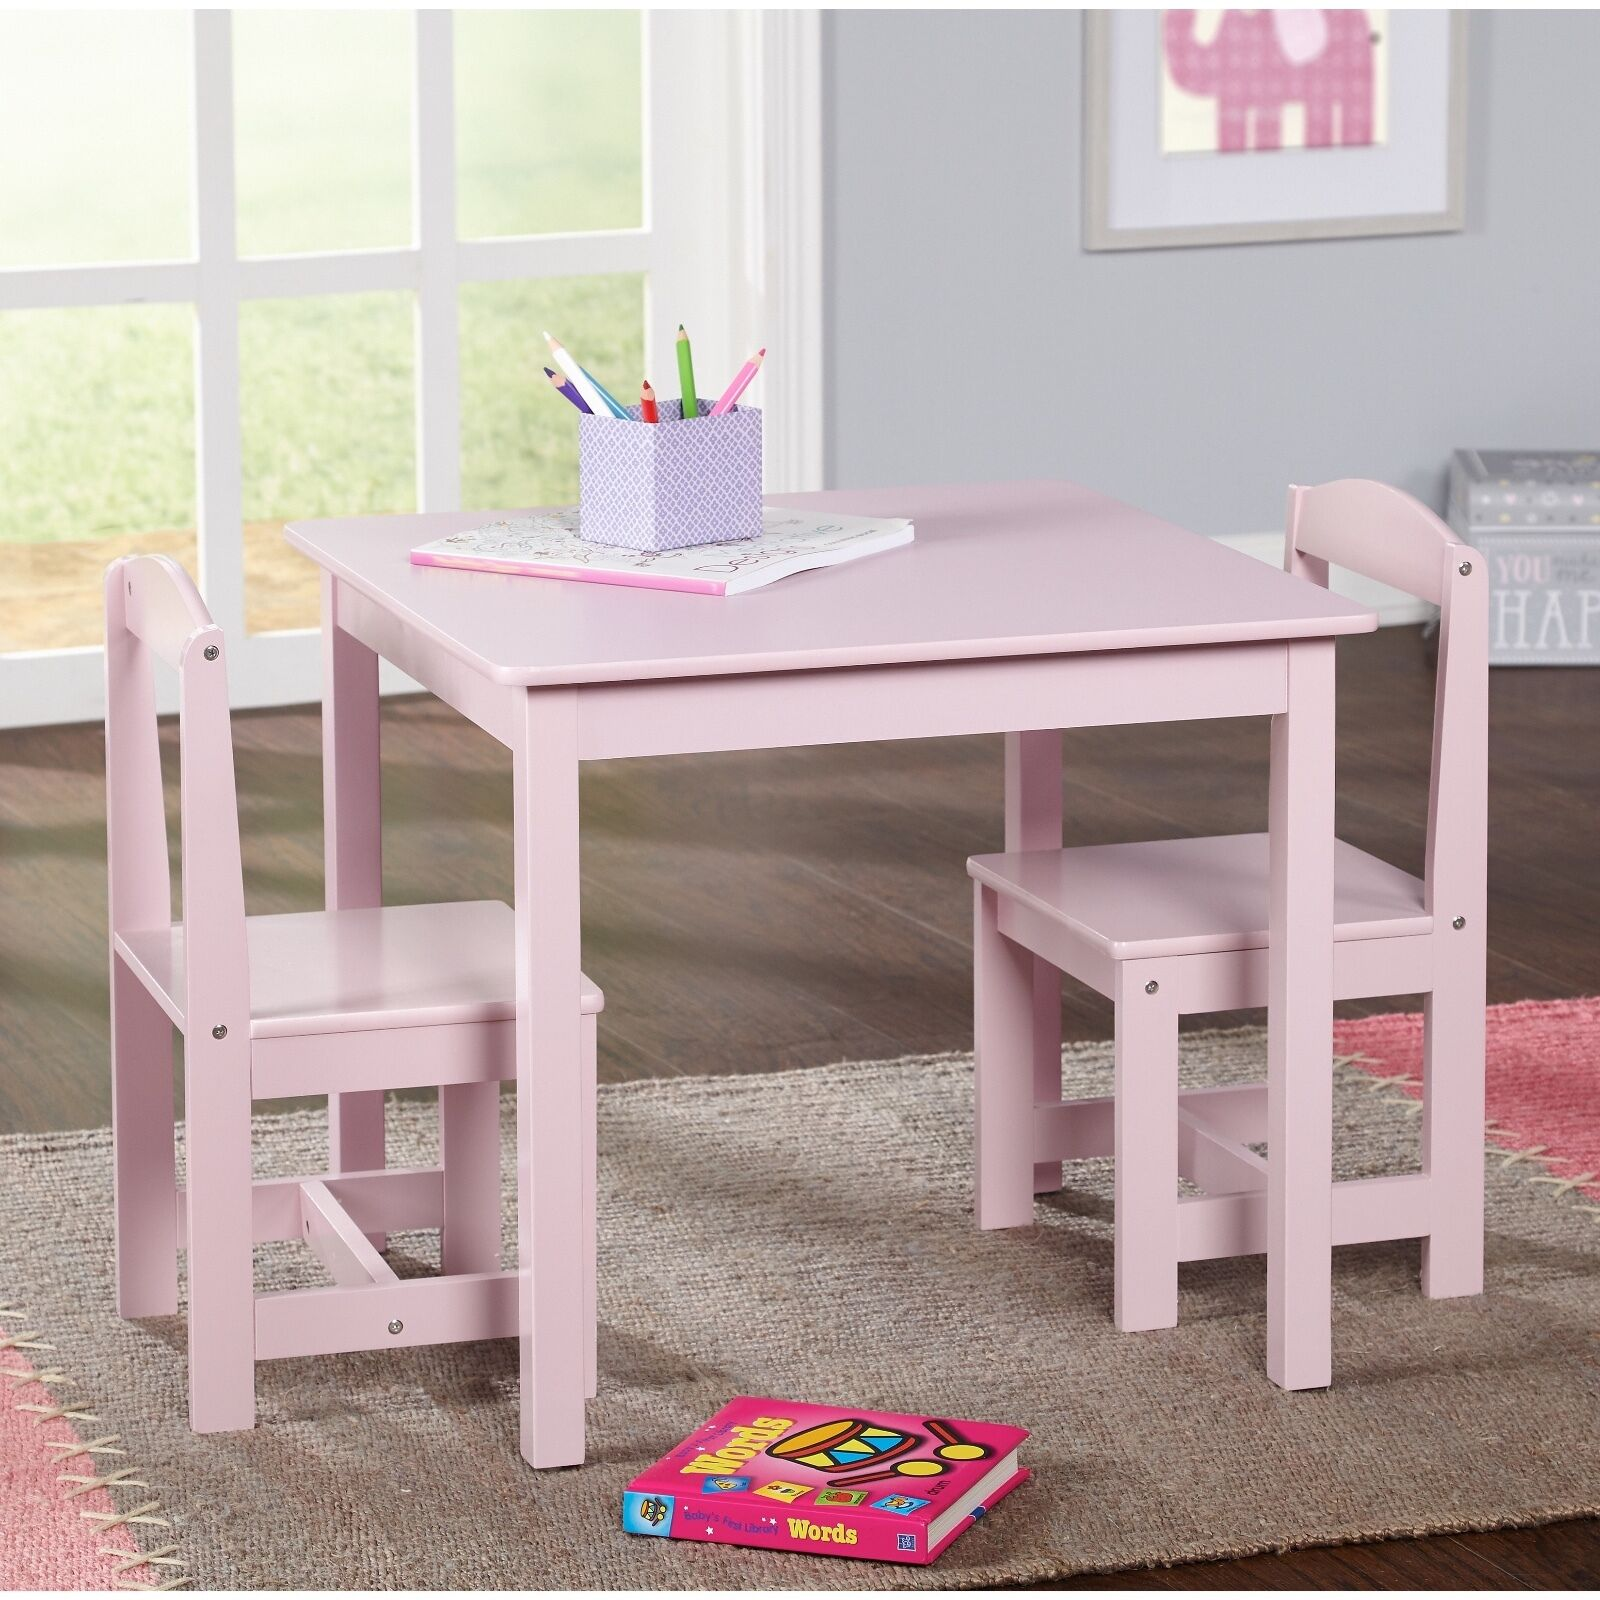 Wooden Table Chairs: Study Small Table And Chair Set Generic 3 Piece Wood